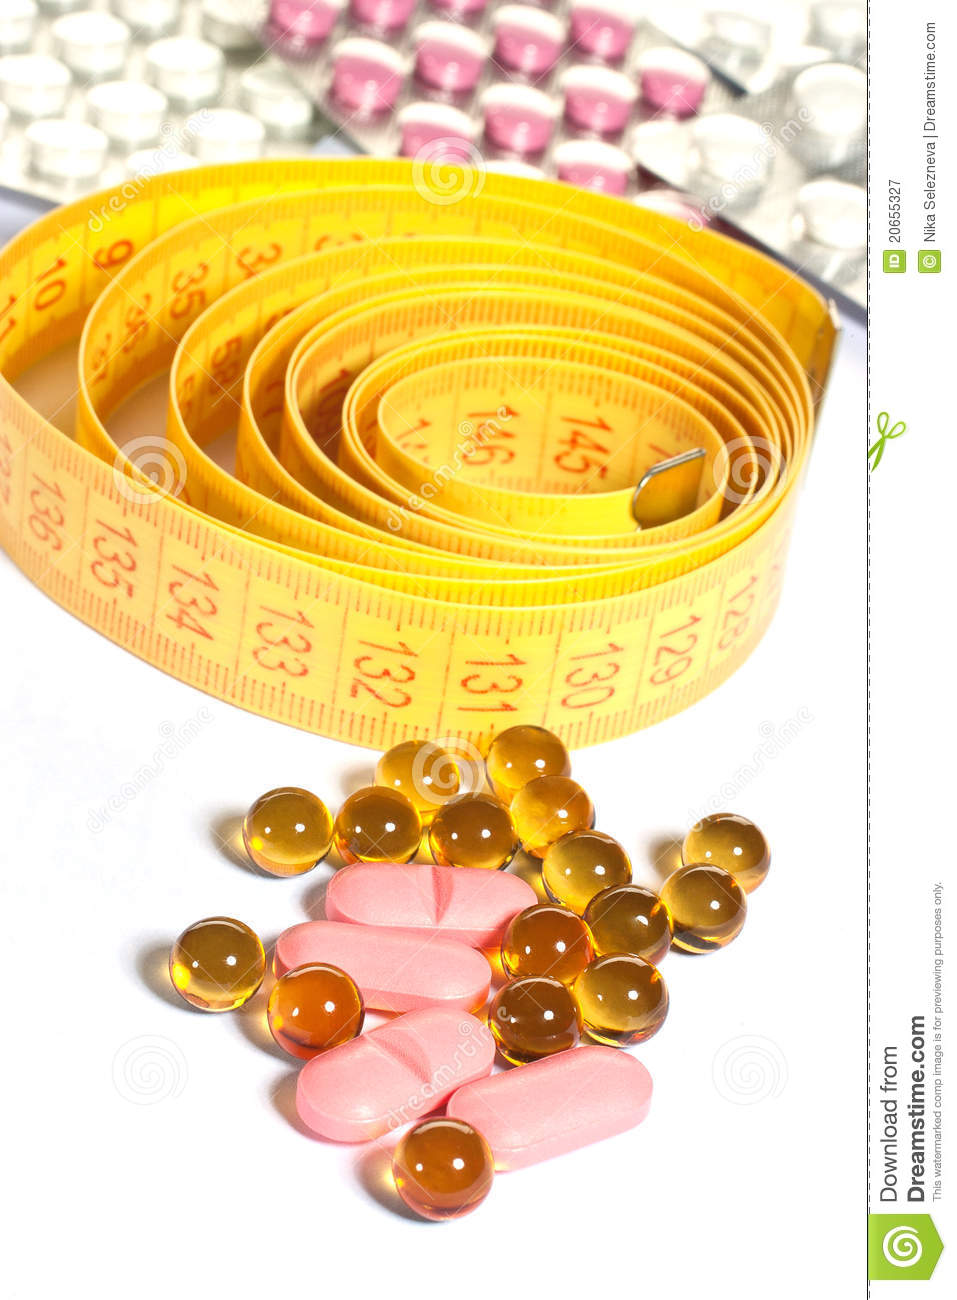 Tape measure and diet pills